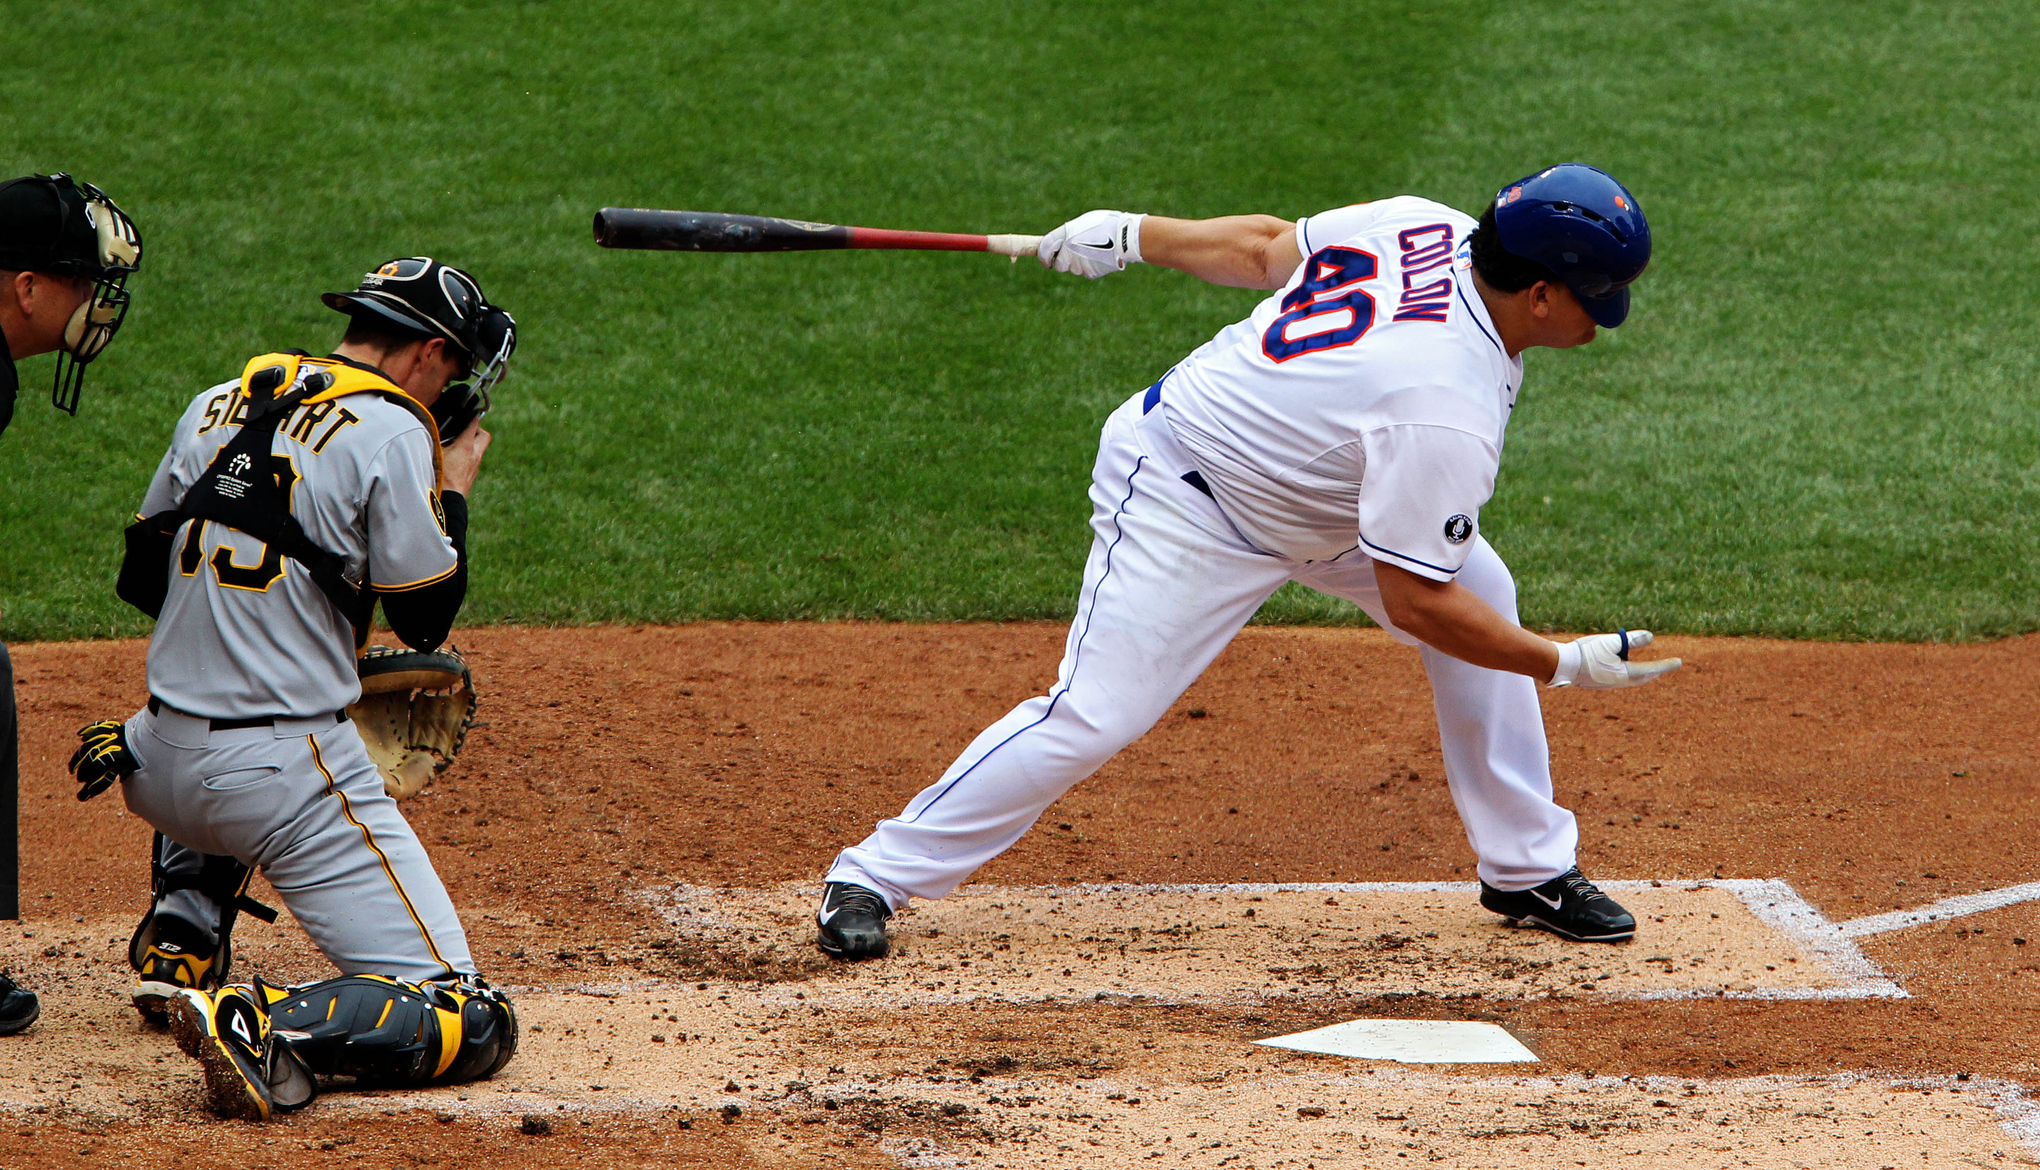 Bartolo Colon runs to bet at home problemy związek bet at home Espa? first with his bat - SBNation.com